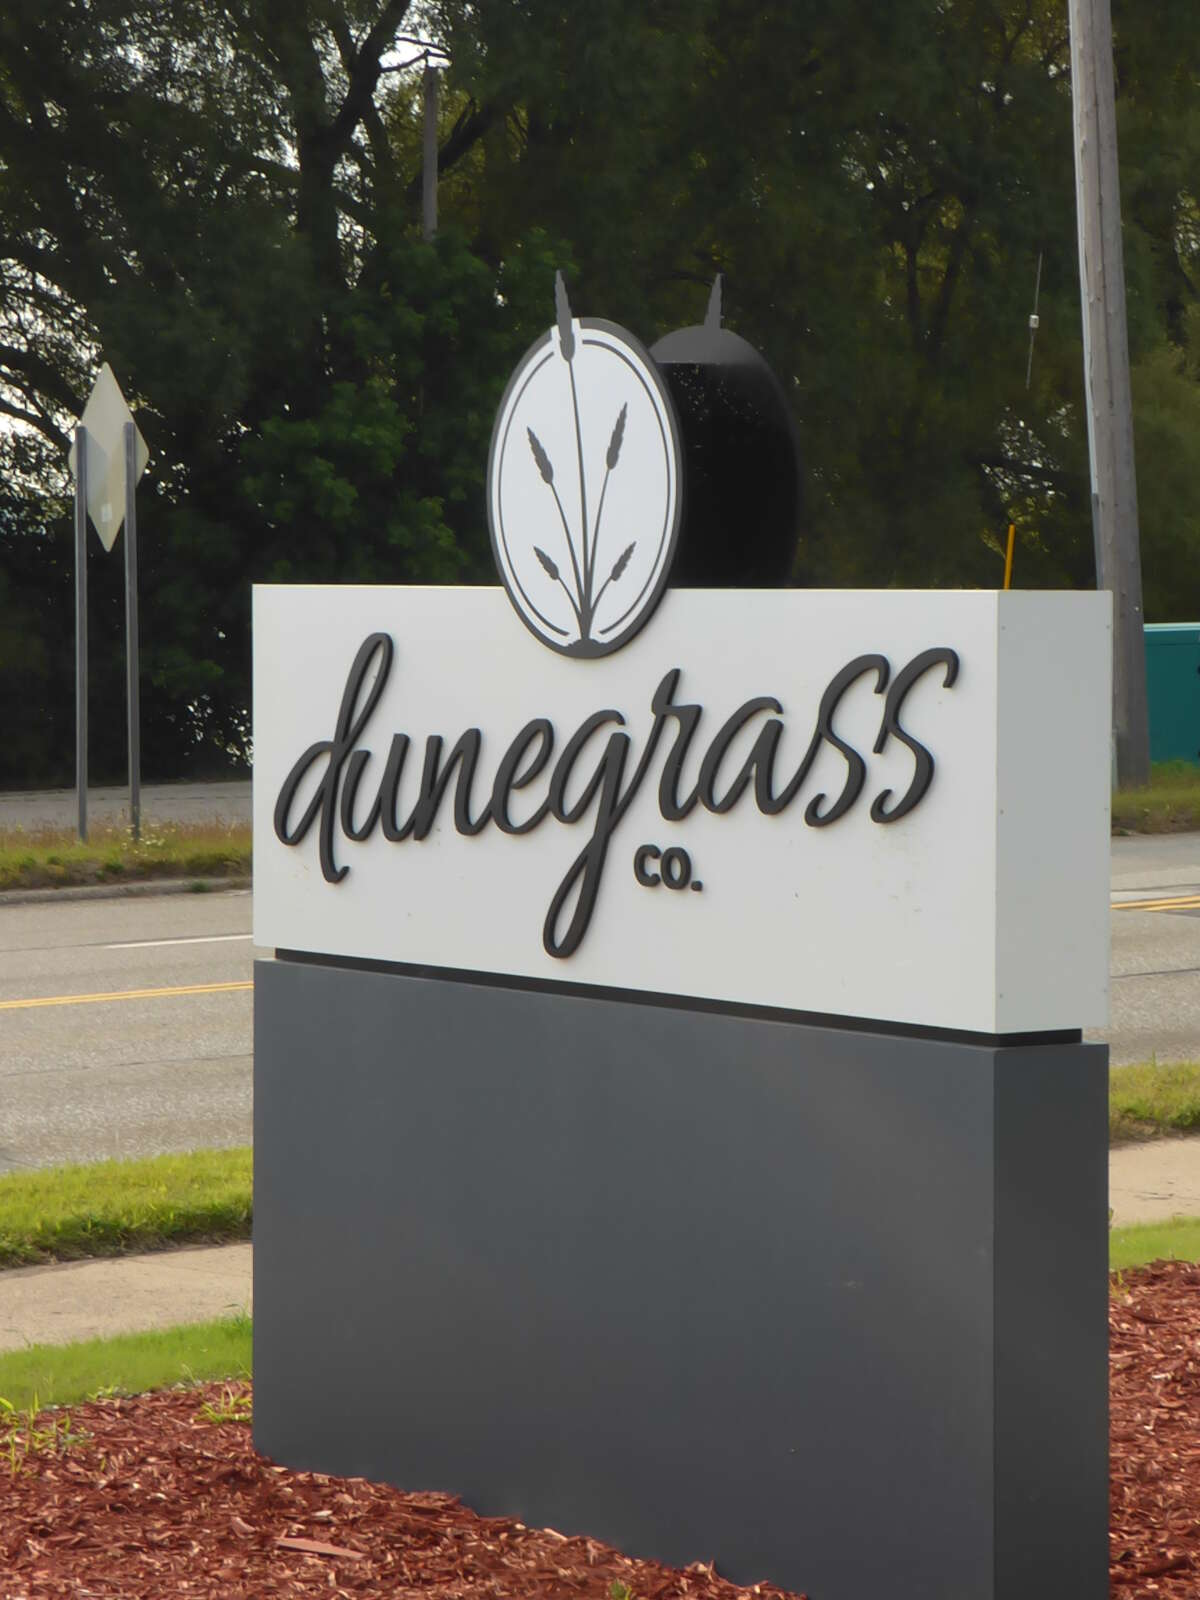 Dunegrass, Manistee's first marijuana business, held a ribbon-cutting event on Aug. 27, 2020.